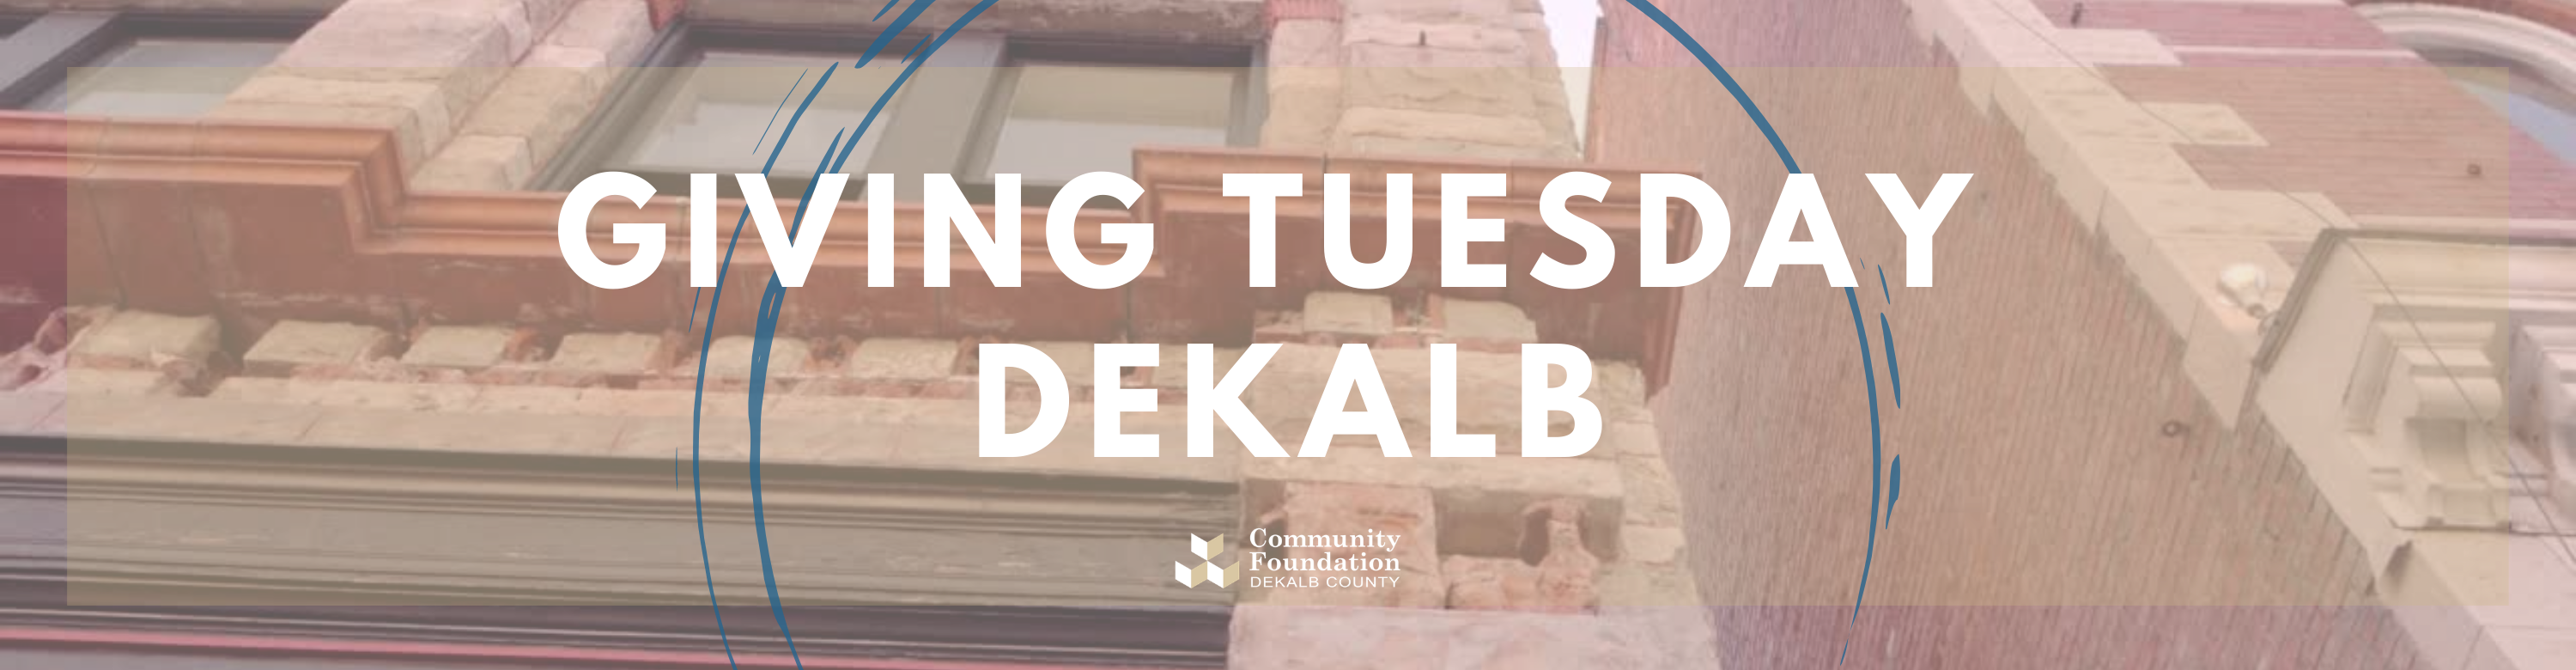 giving tuesday dekalb